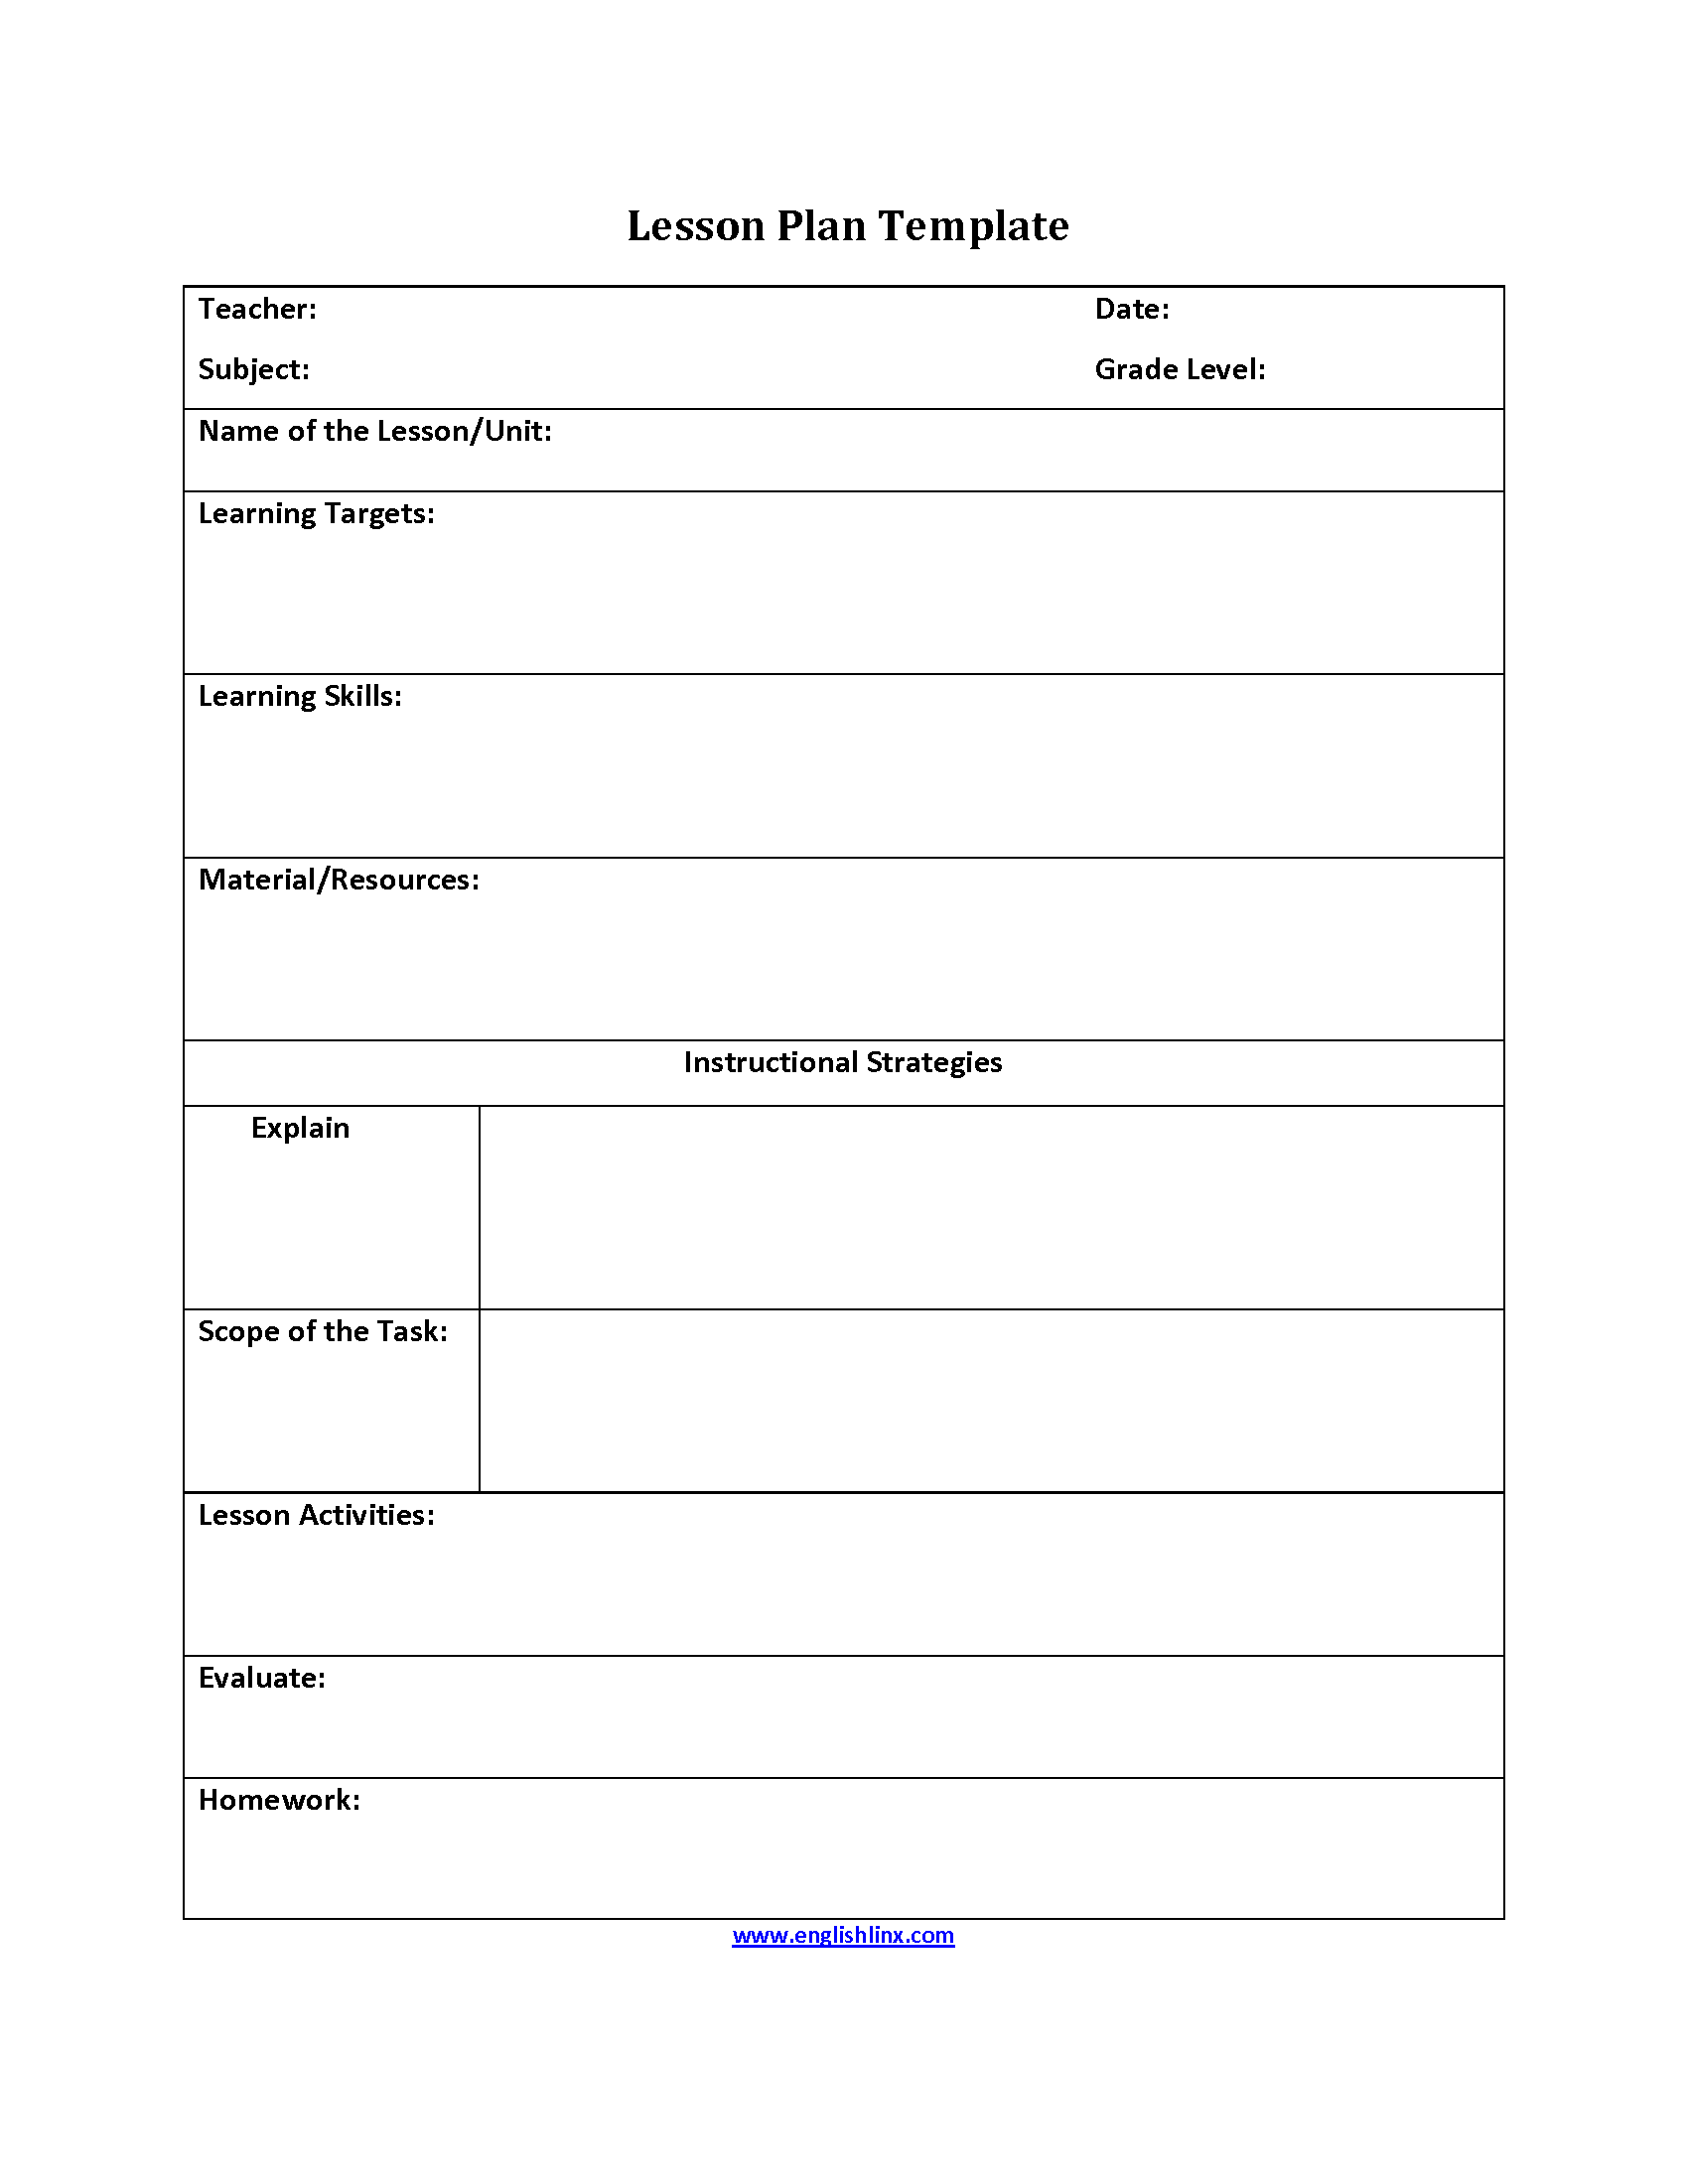 efl lesson plan template - lesson plan template